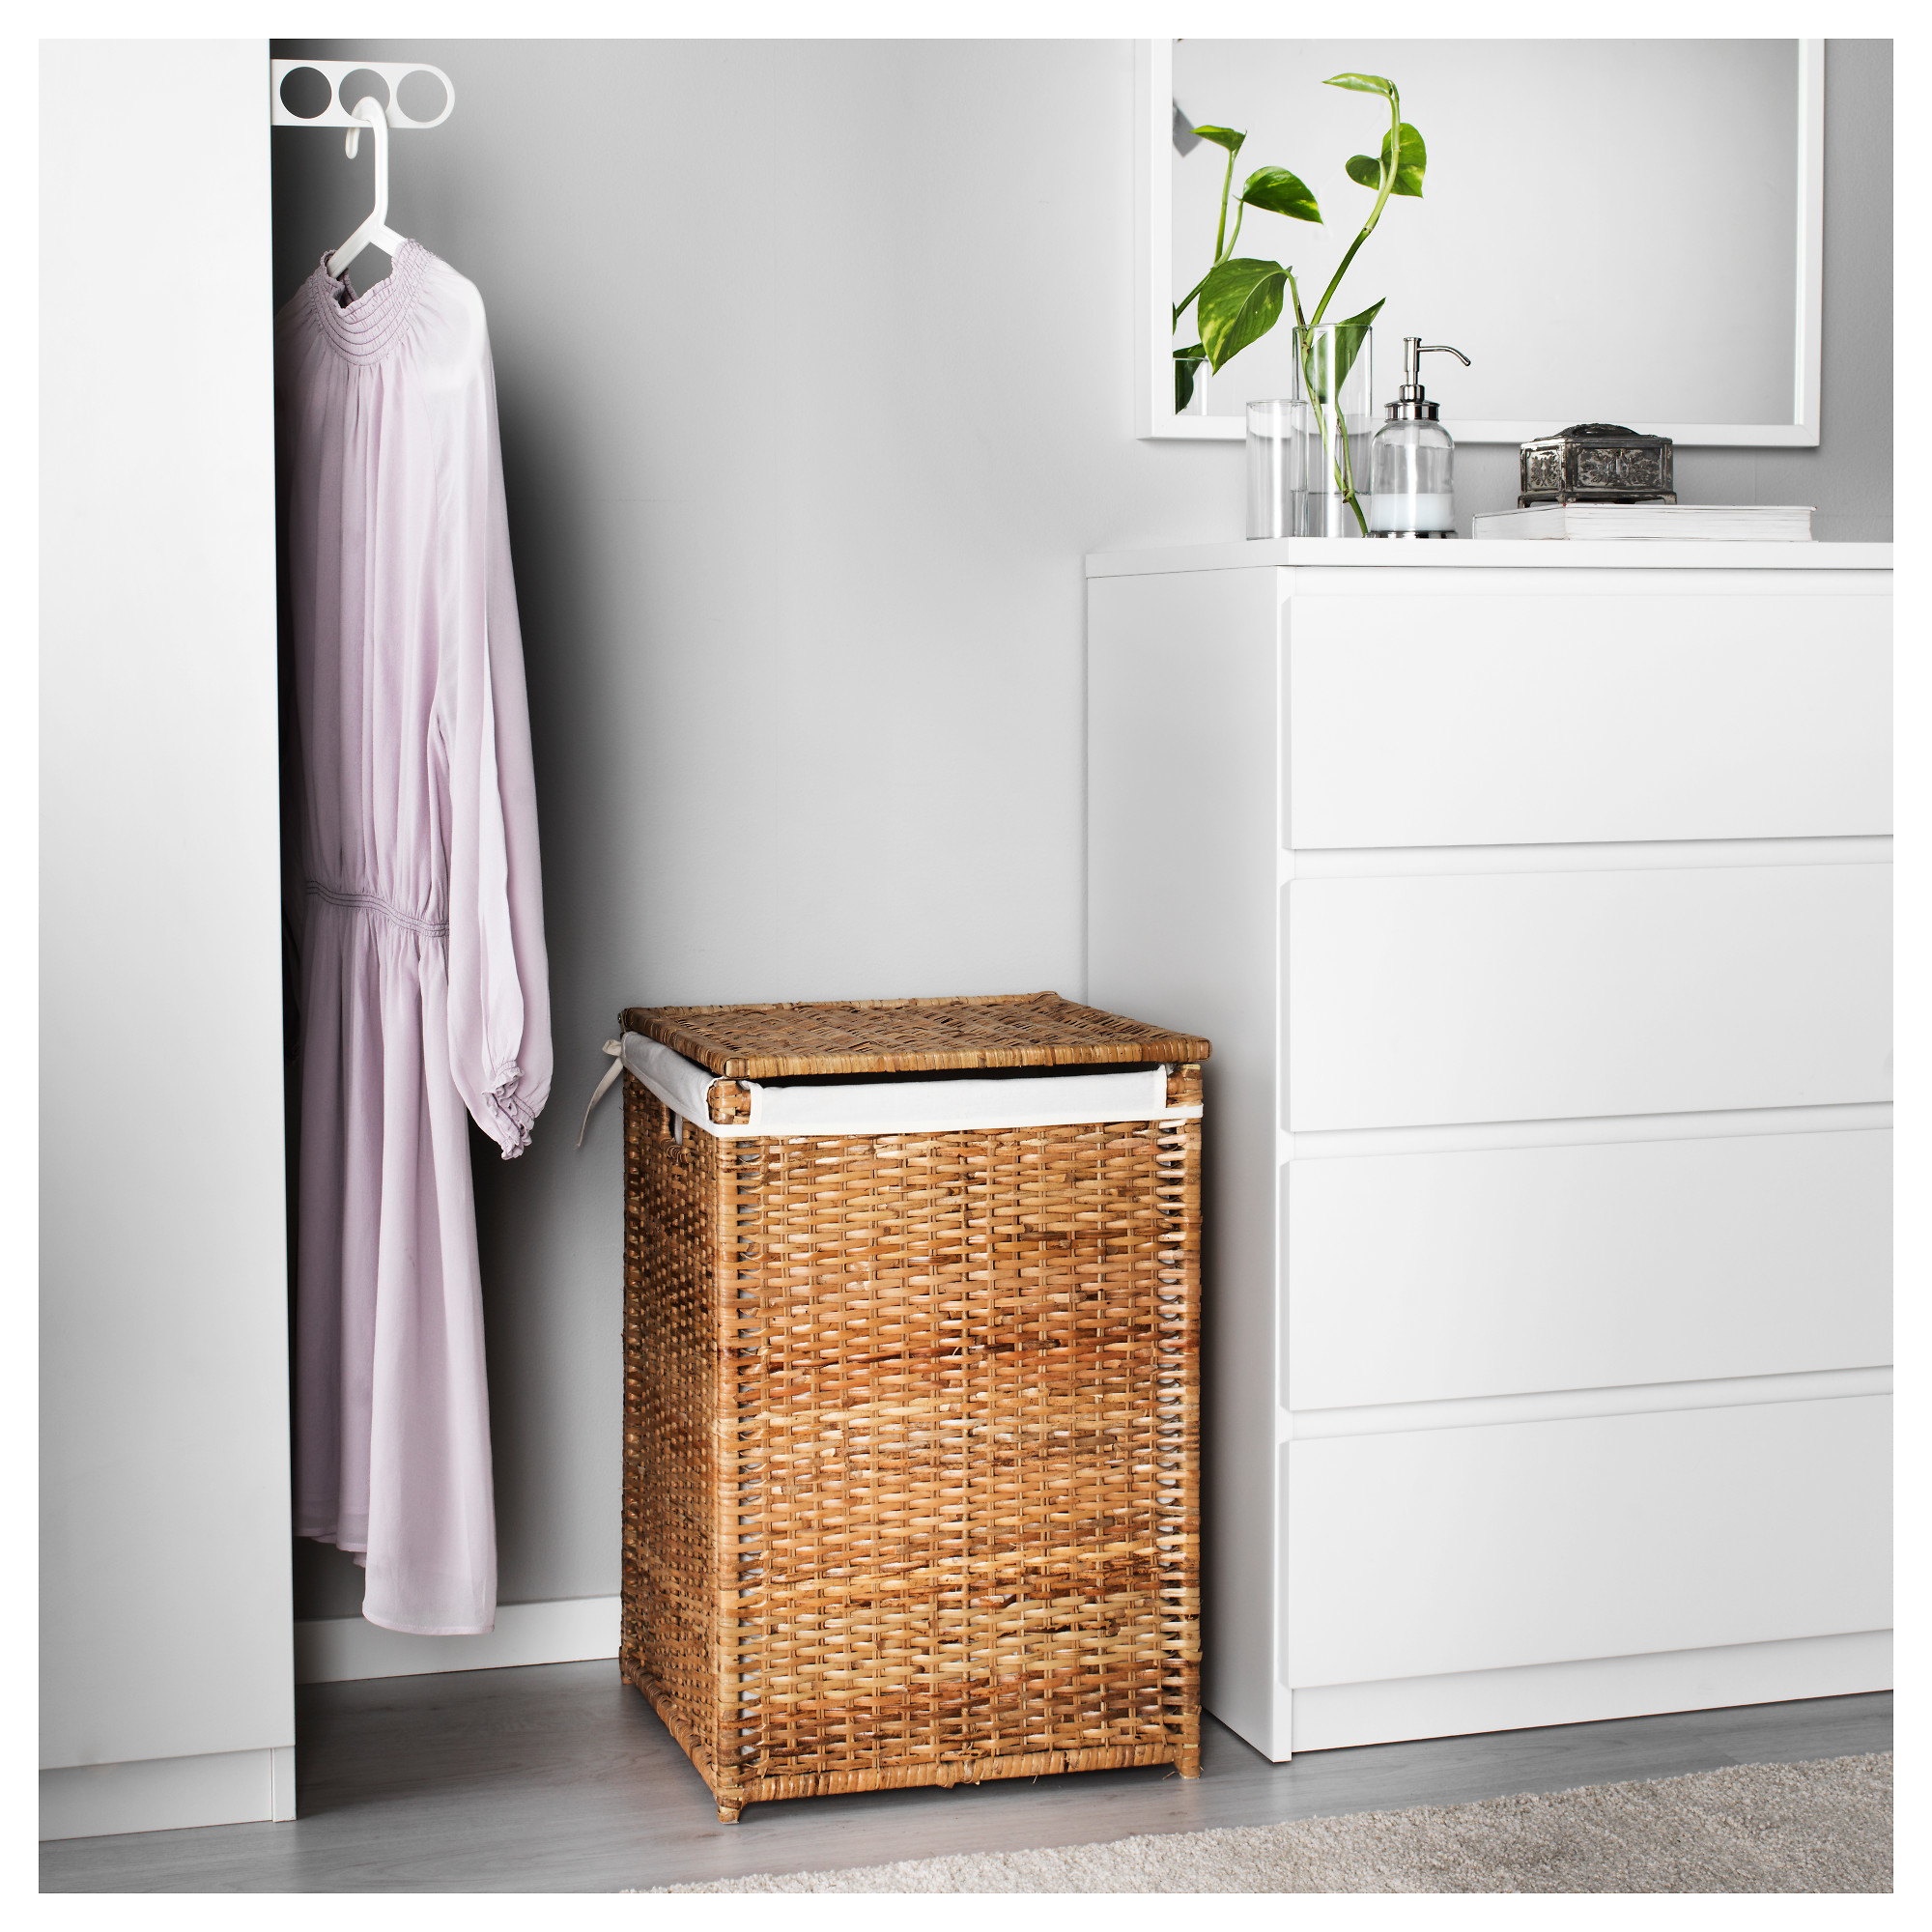 BRANS Laundry basket with lining IKEA